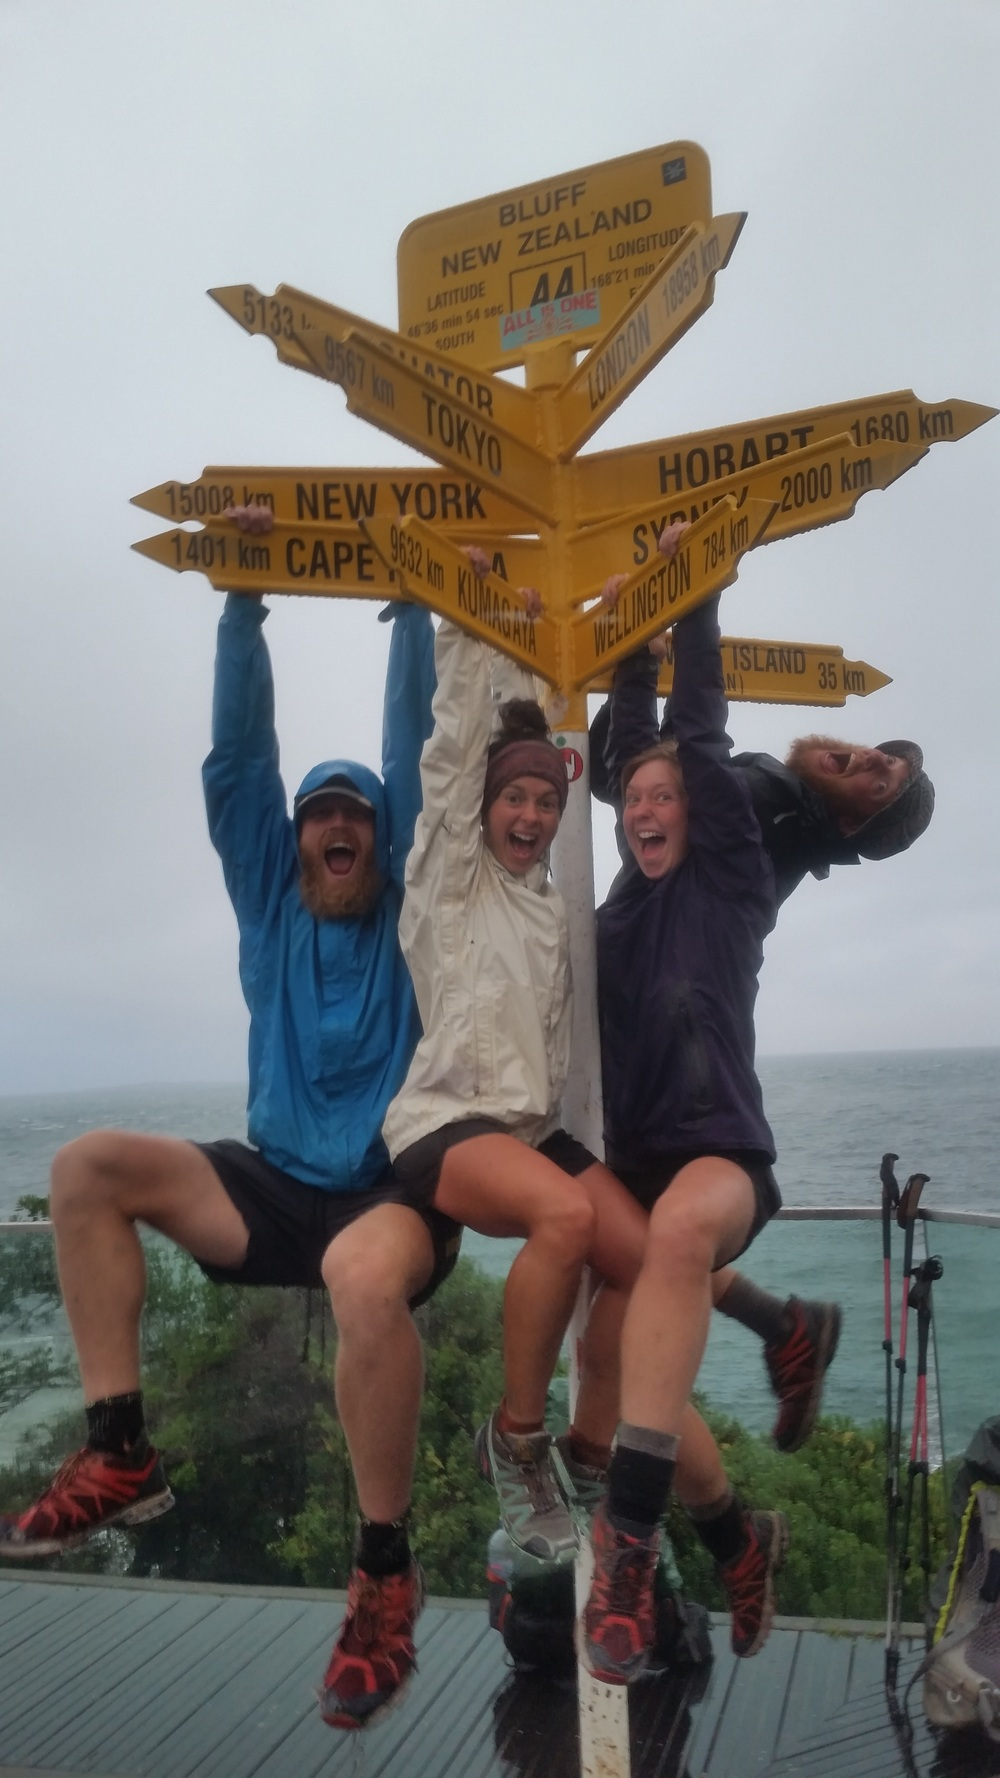 We started Day 1 at Cape Reinga together and 4 1/2 months later we finished together at Bluff!